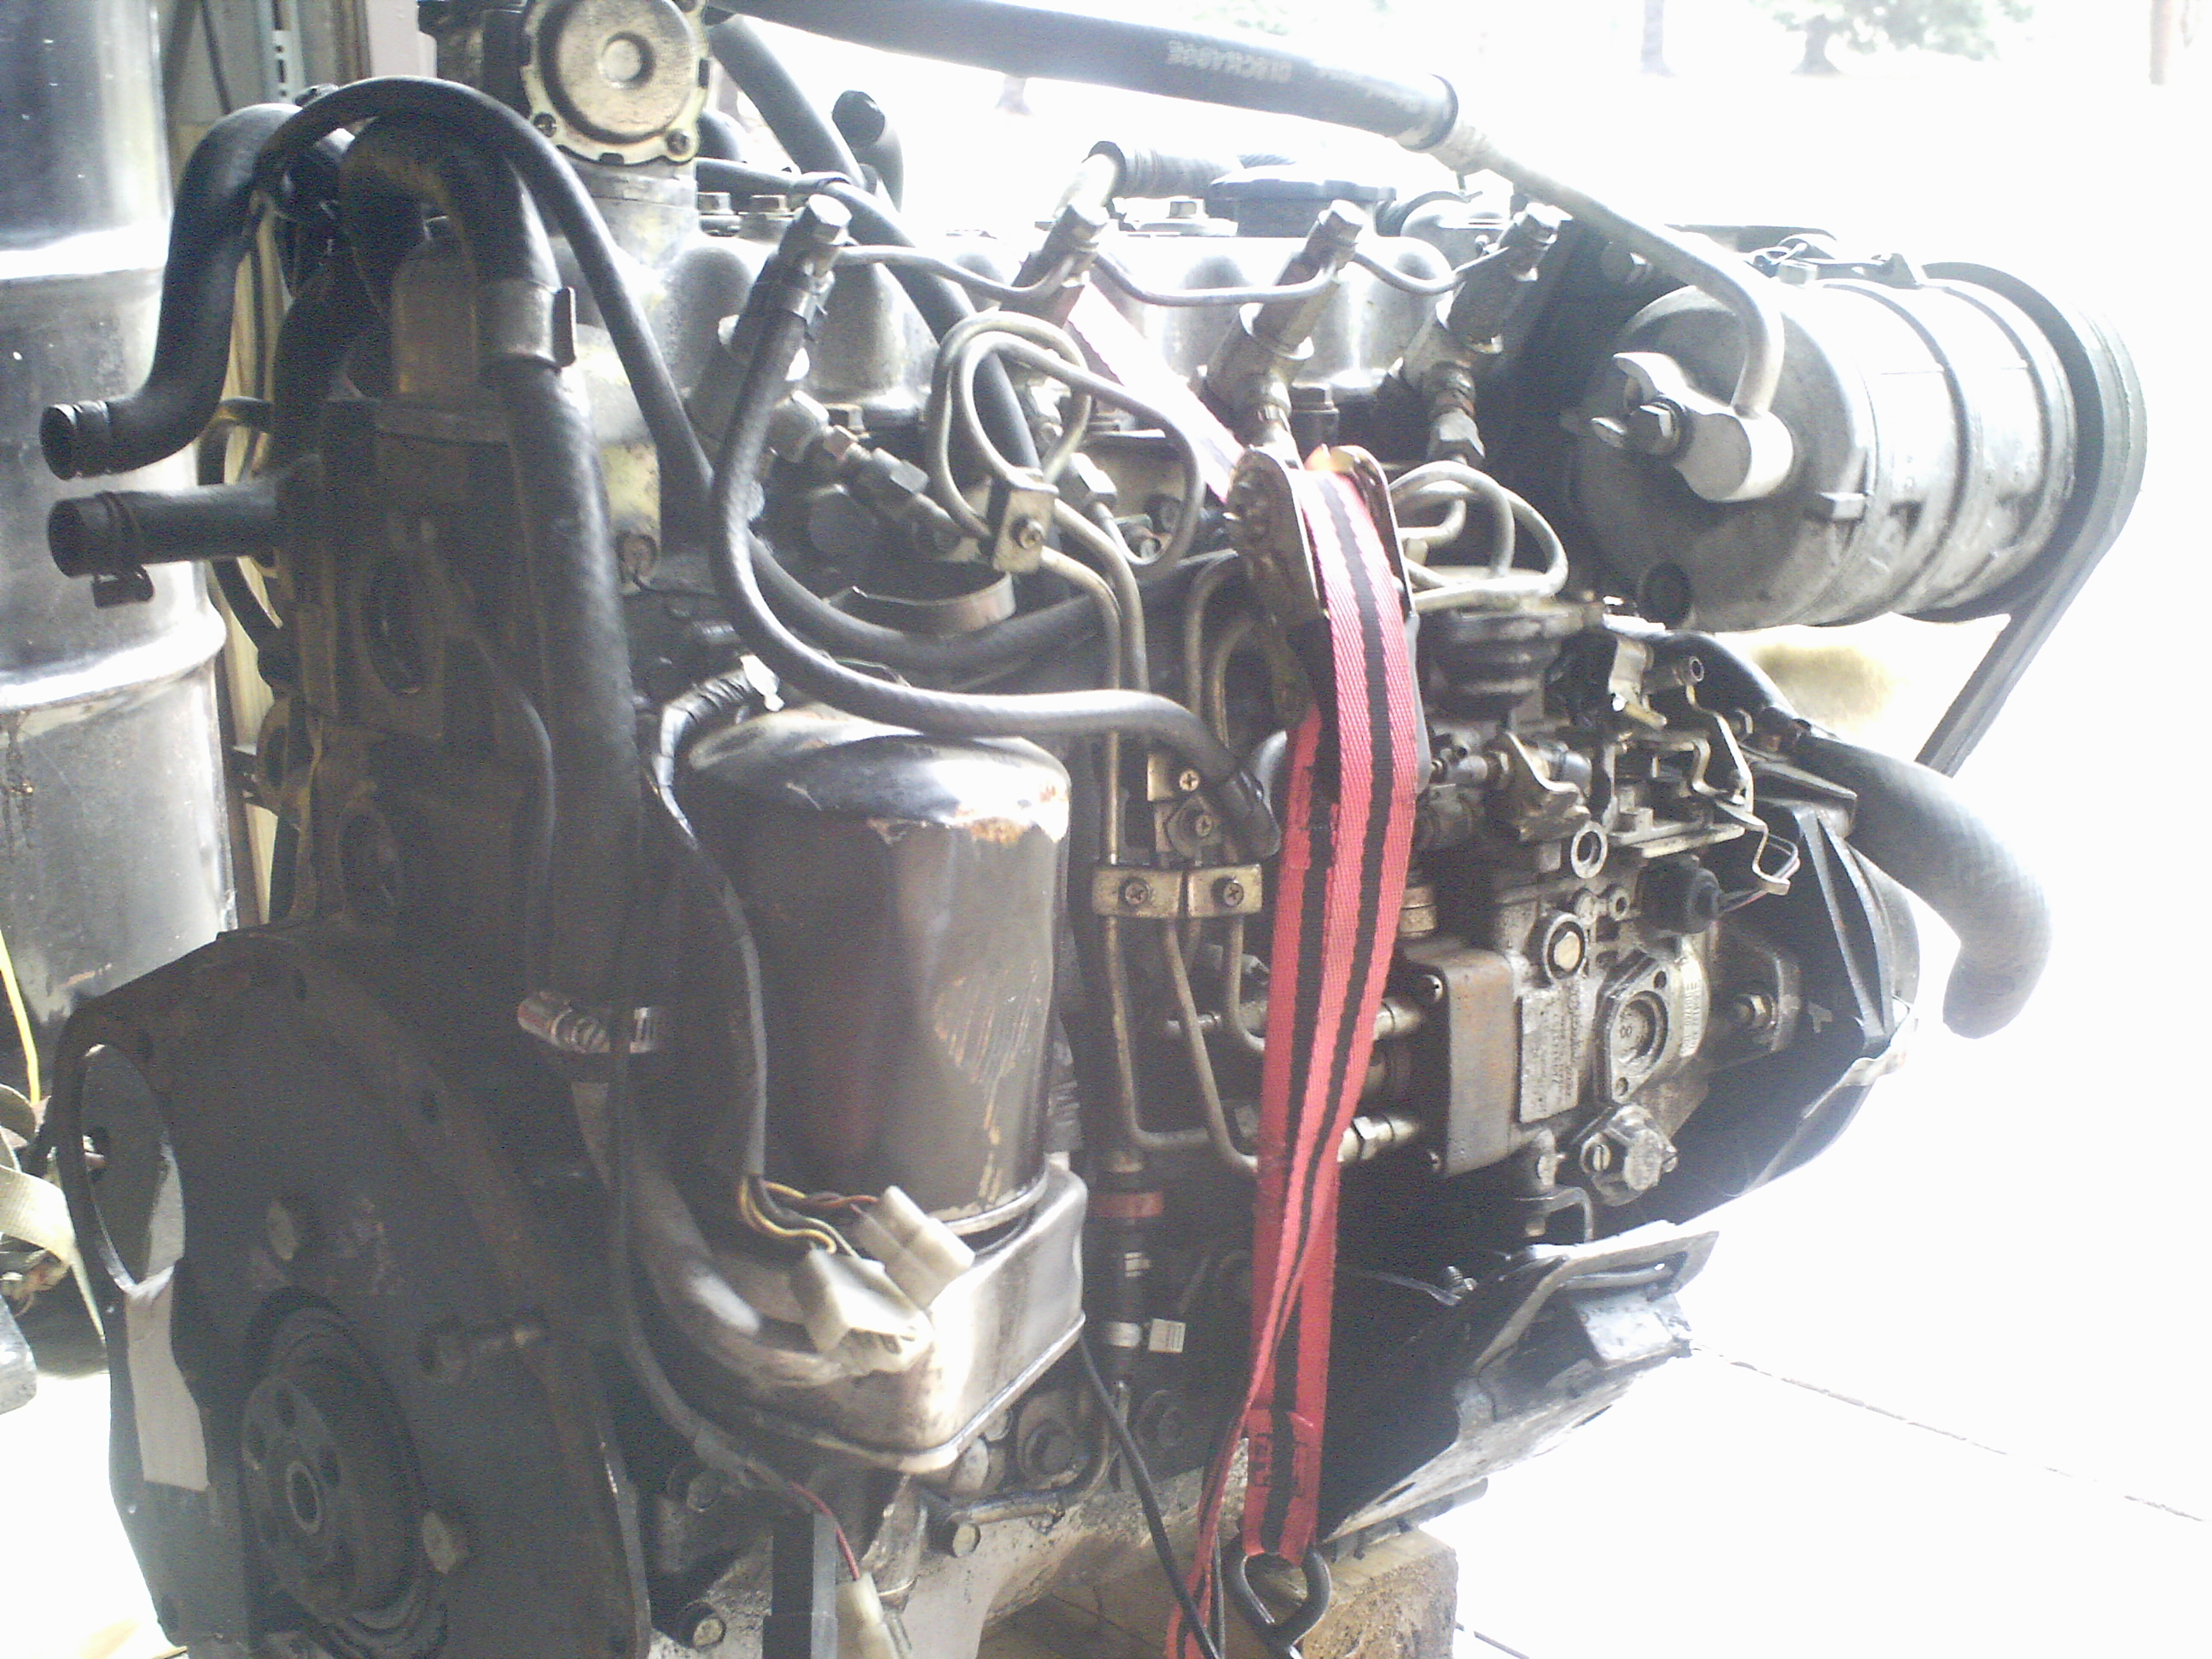 Isuzu C223T Engine 004.jpg